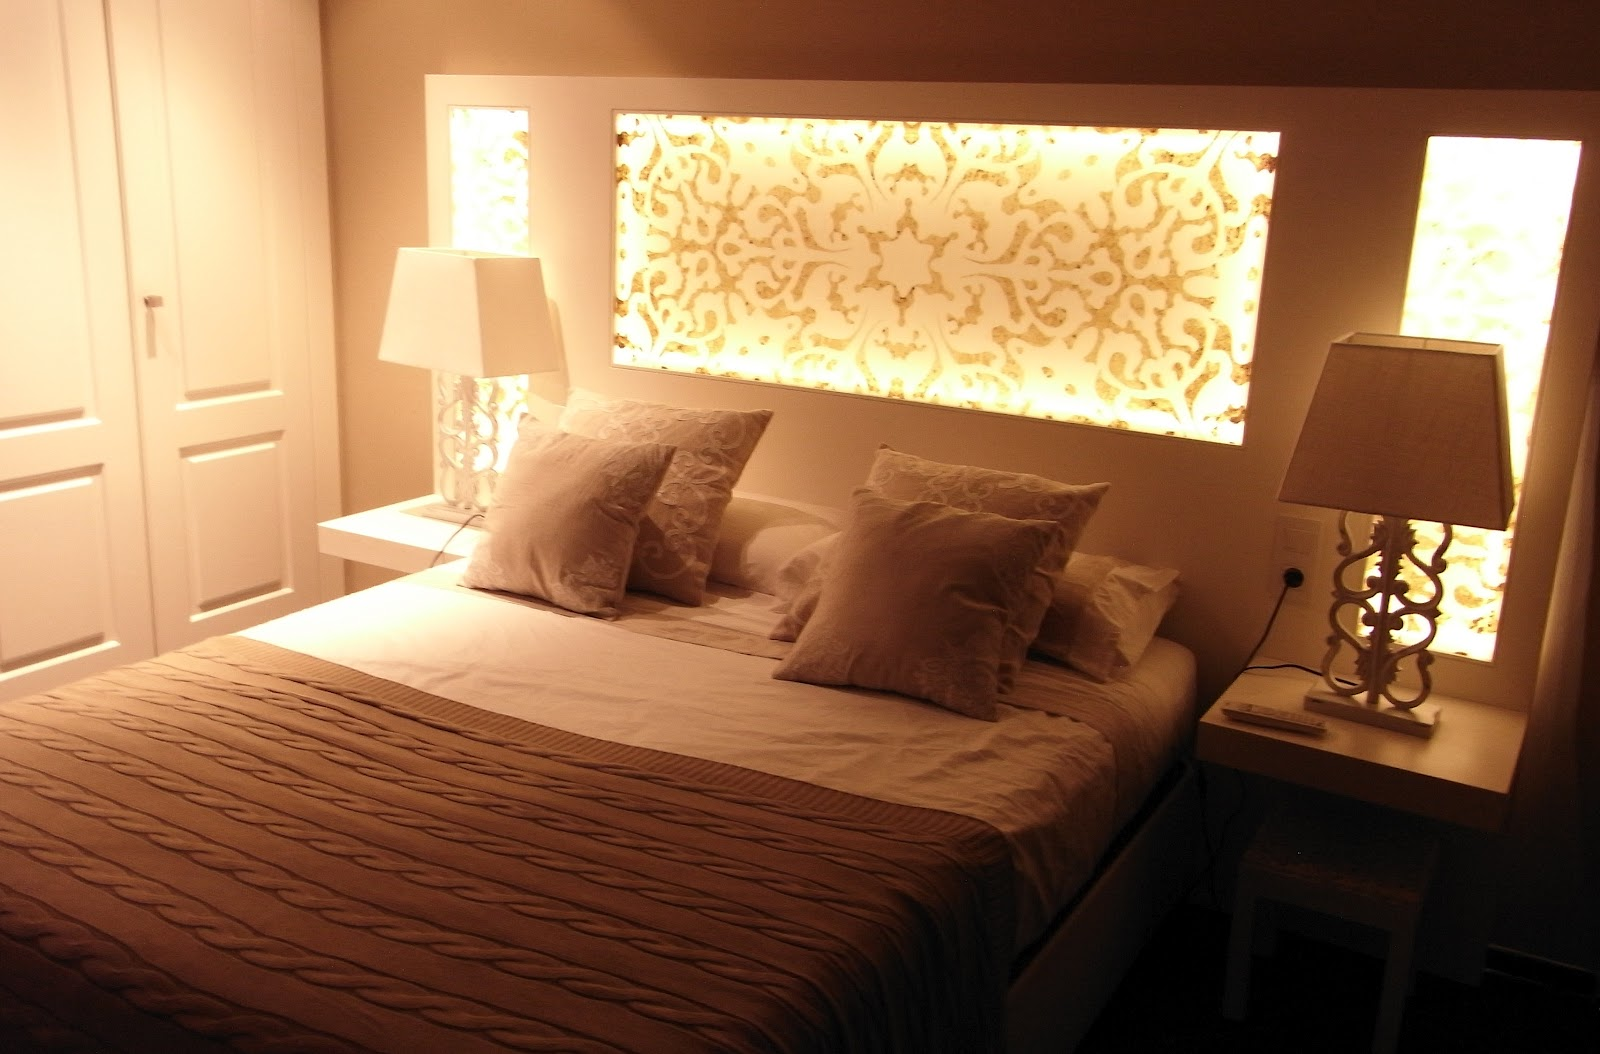 Designs and architects 10 ideas for headboards for beds - Cabeceras de cama en madera ...